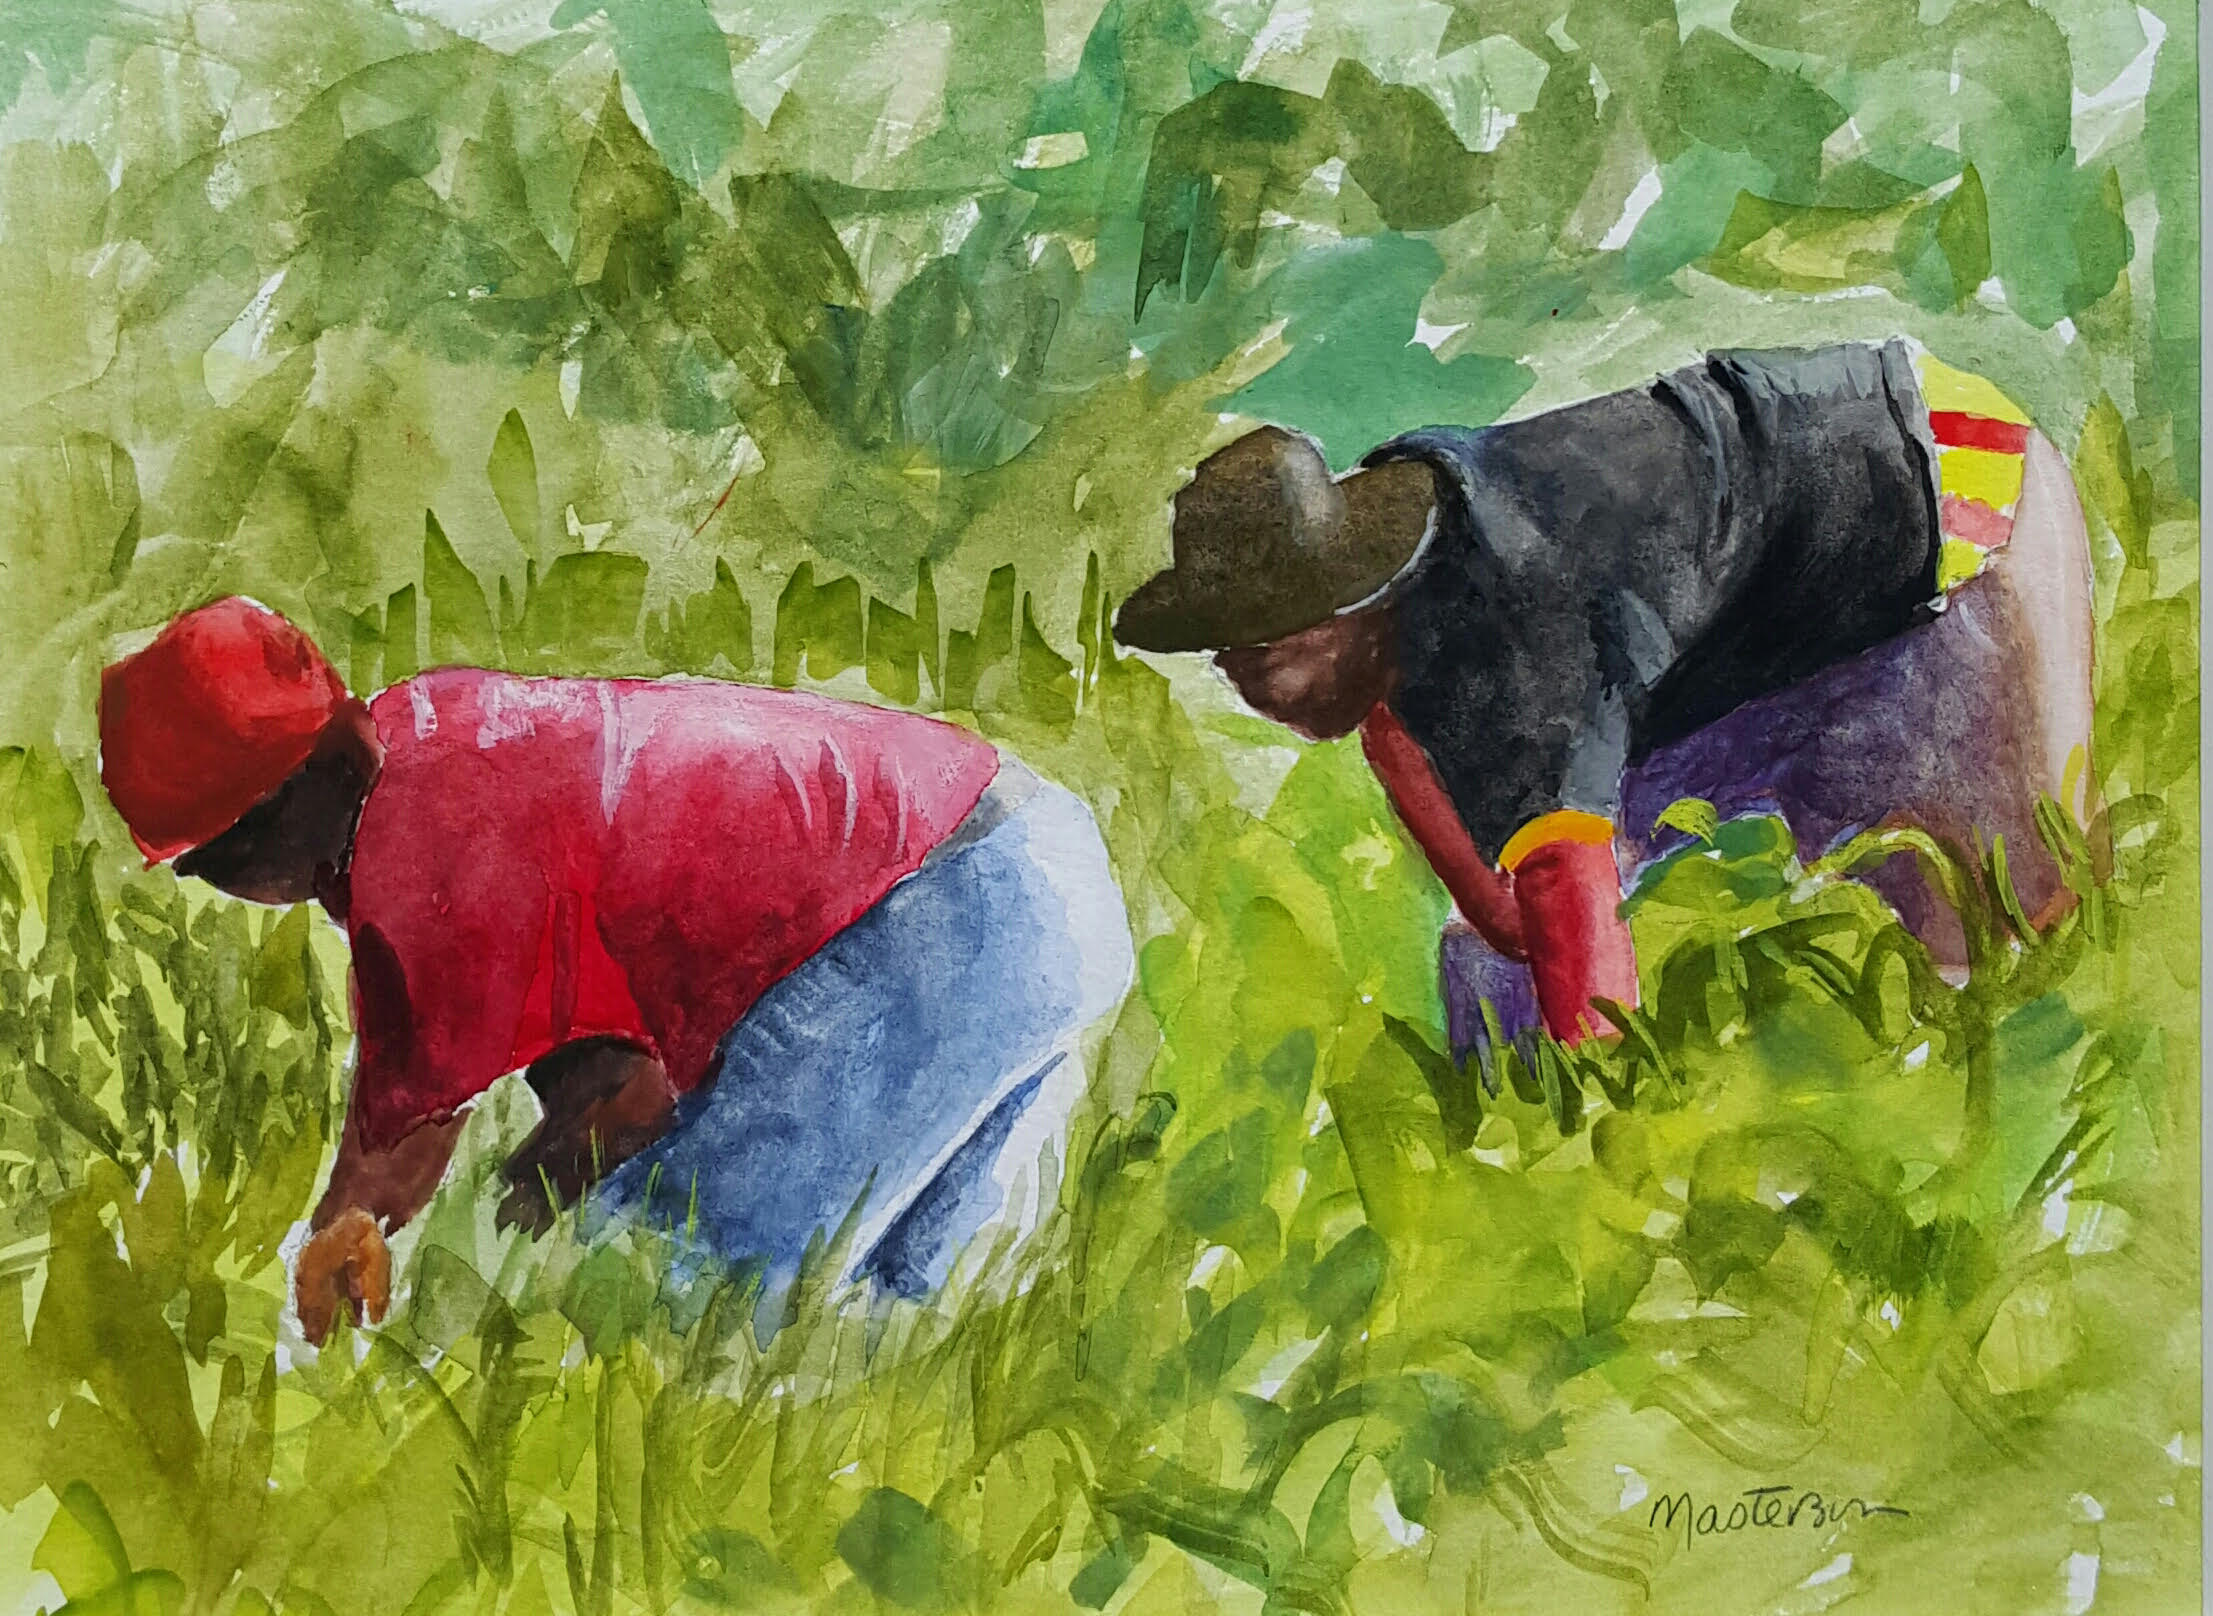 gouache #5, a painting by Barbara Masterson